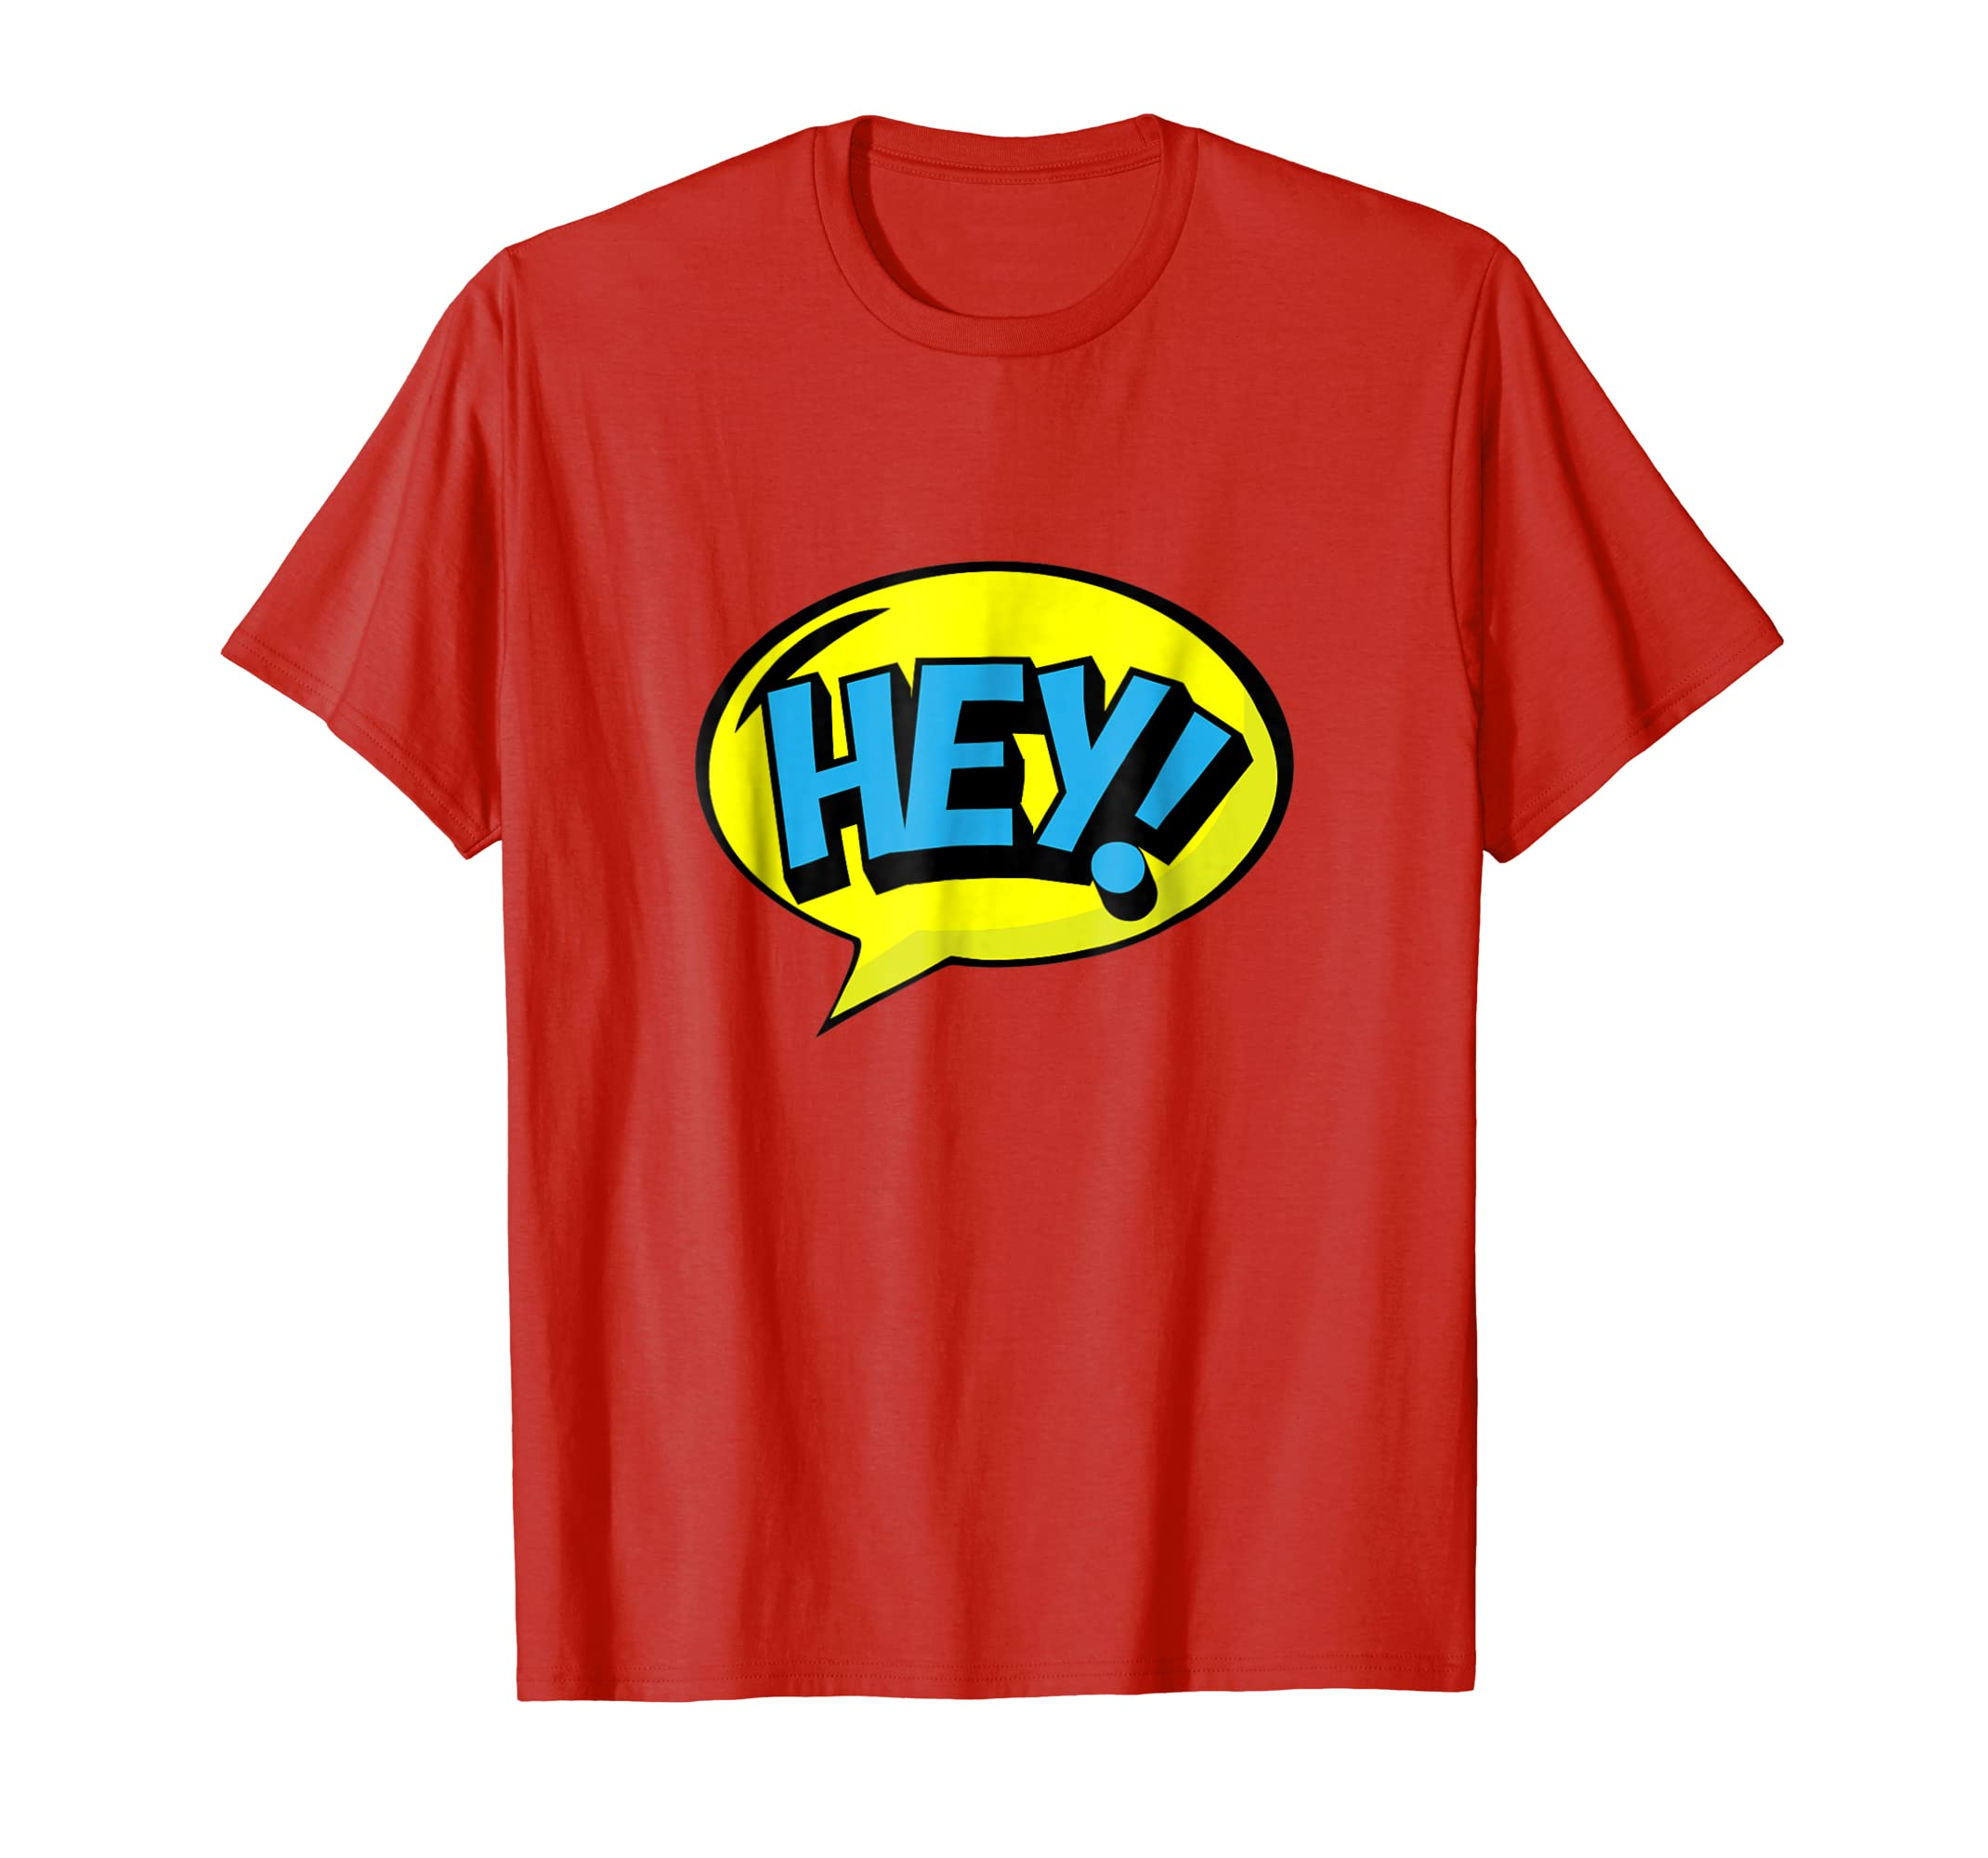 Amazon com: Hey! Speech bubble graphic T-Shirt for Men and